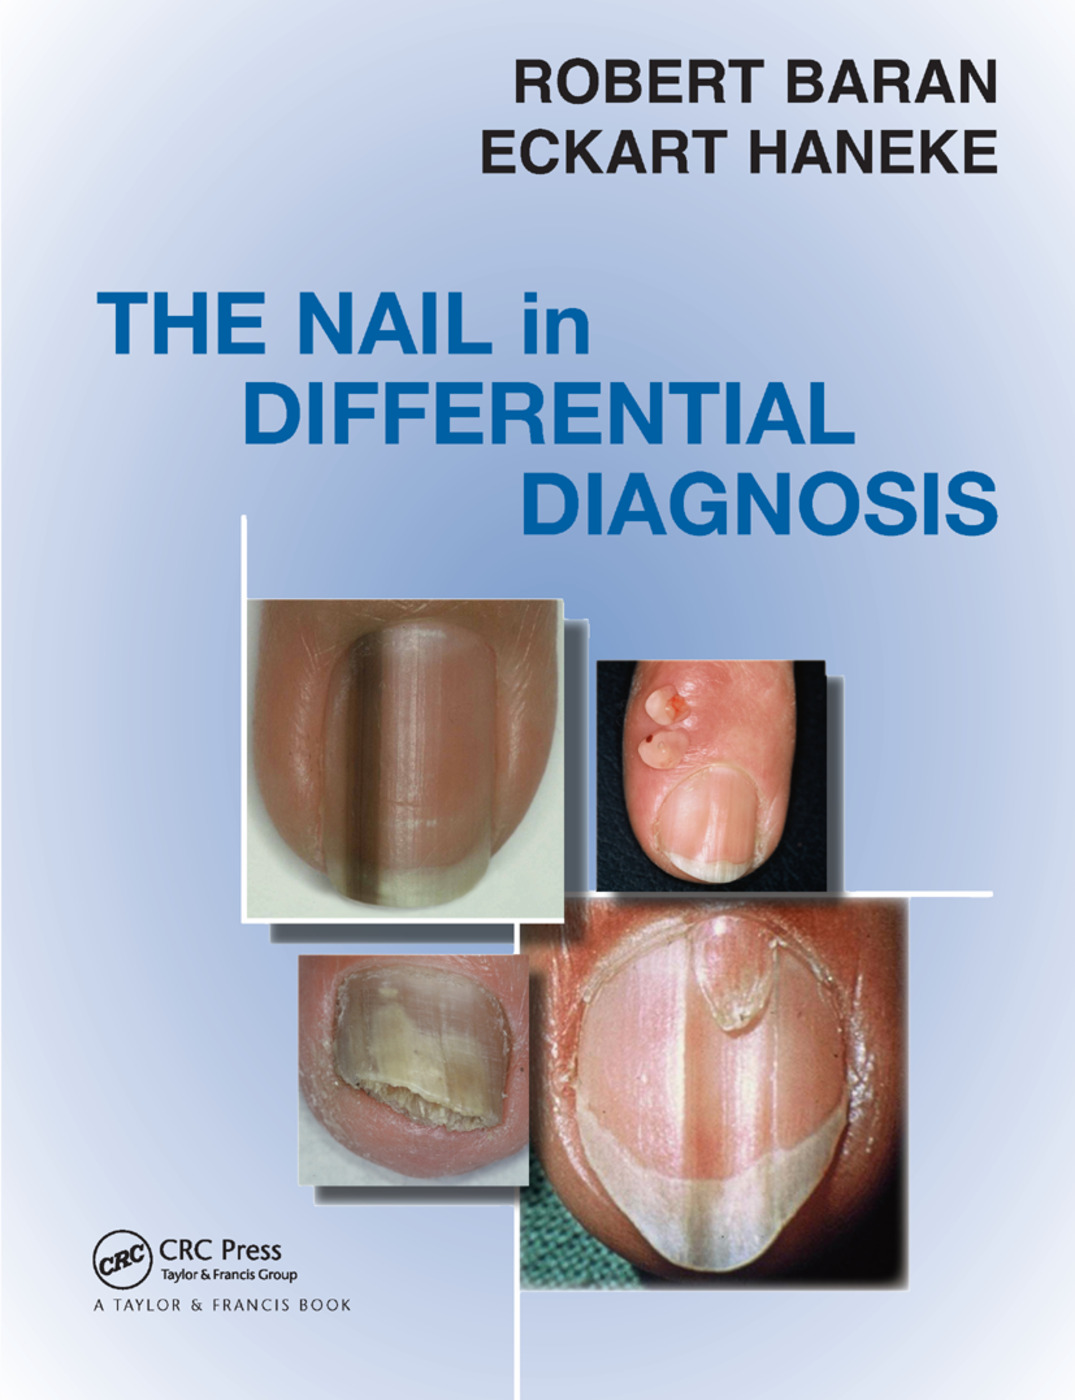 Nail in Differential Diagnosis